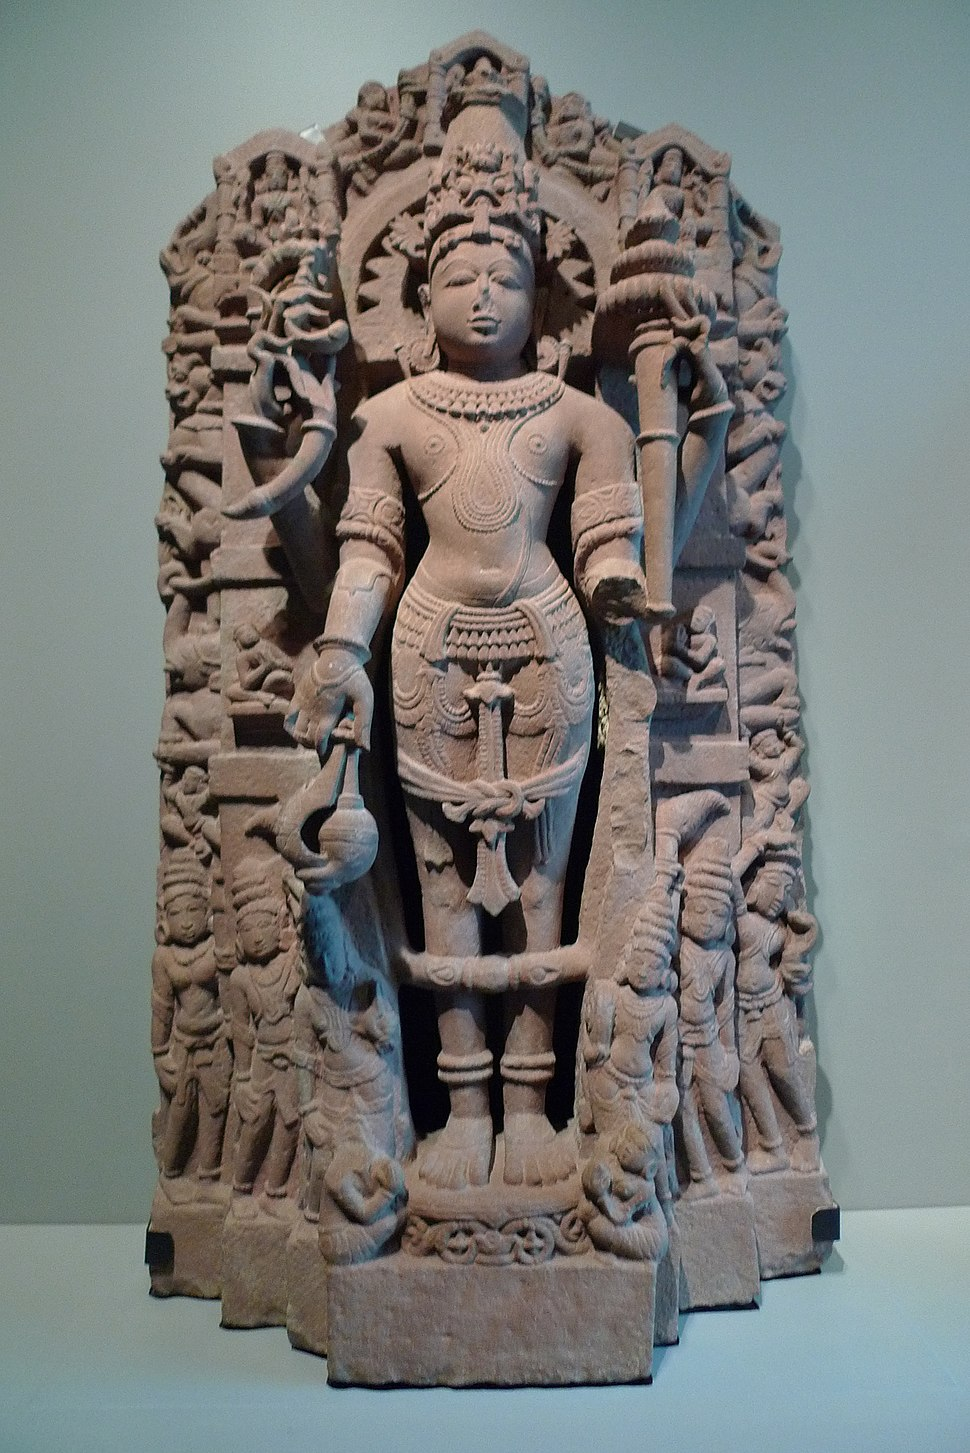 The Hindu deity Vishnu - Indian Art - Asian Art Museum of San Francisco